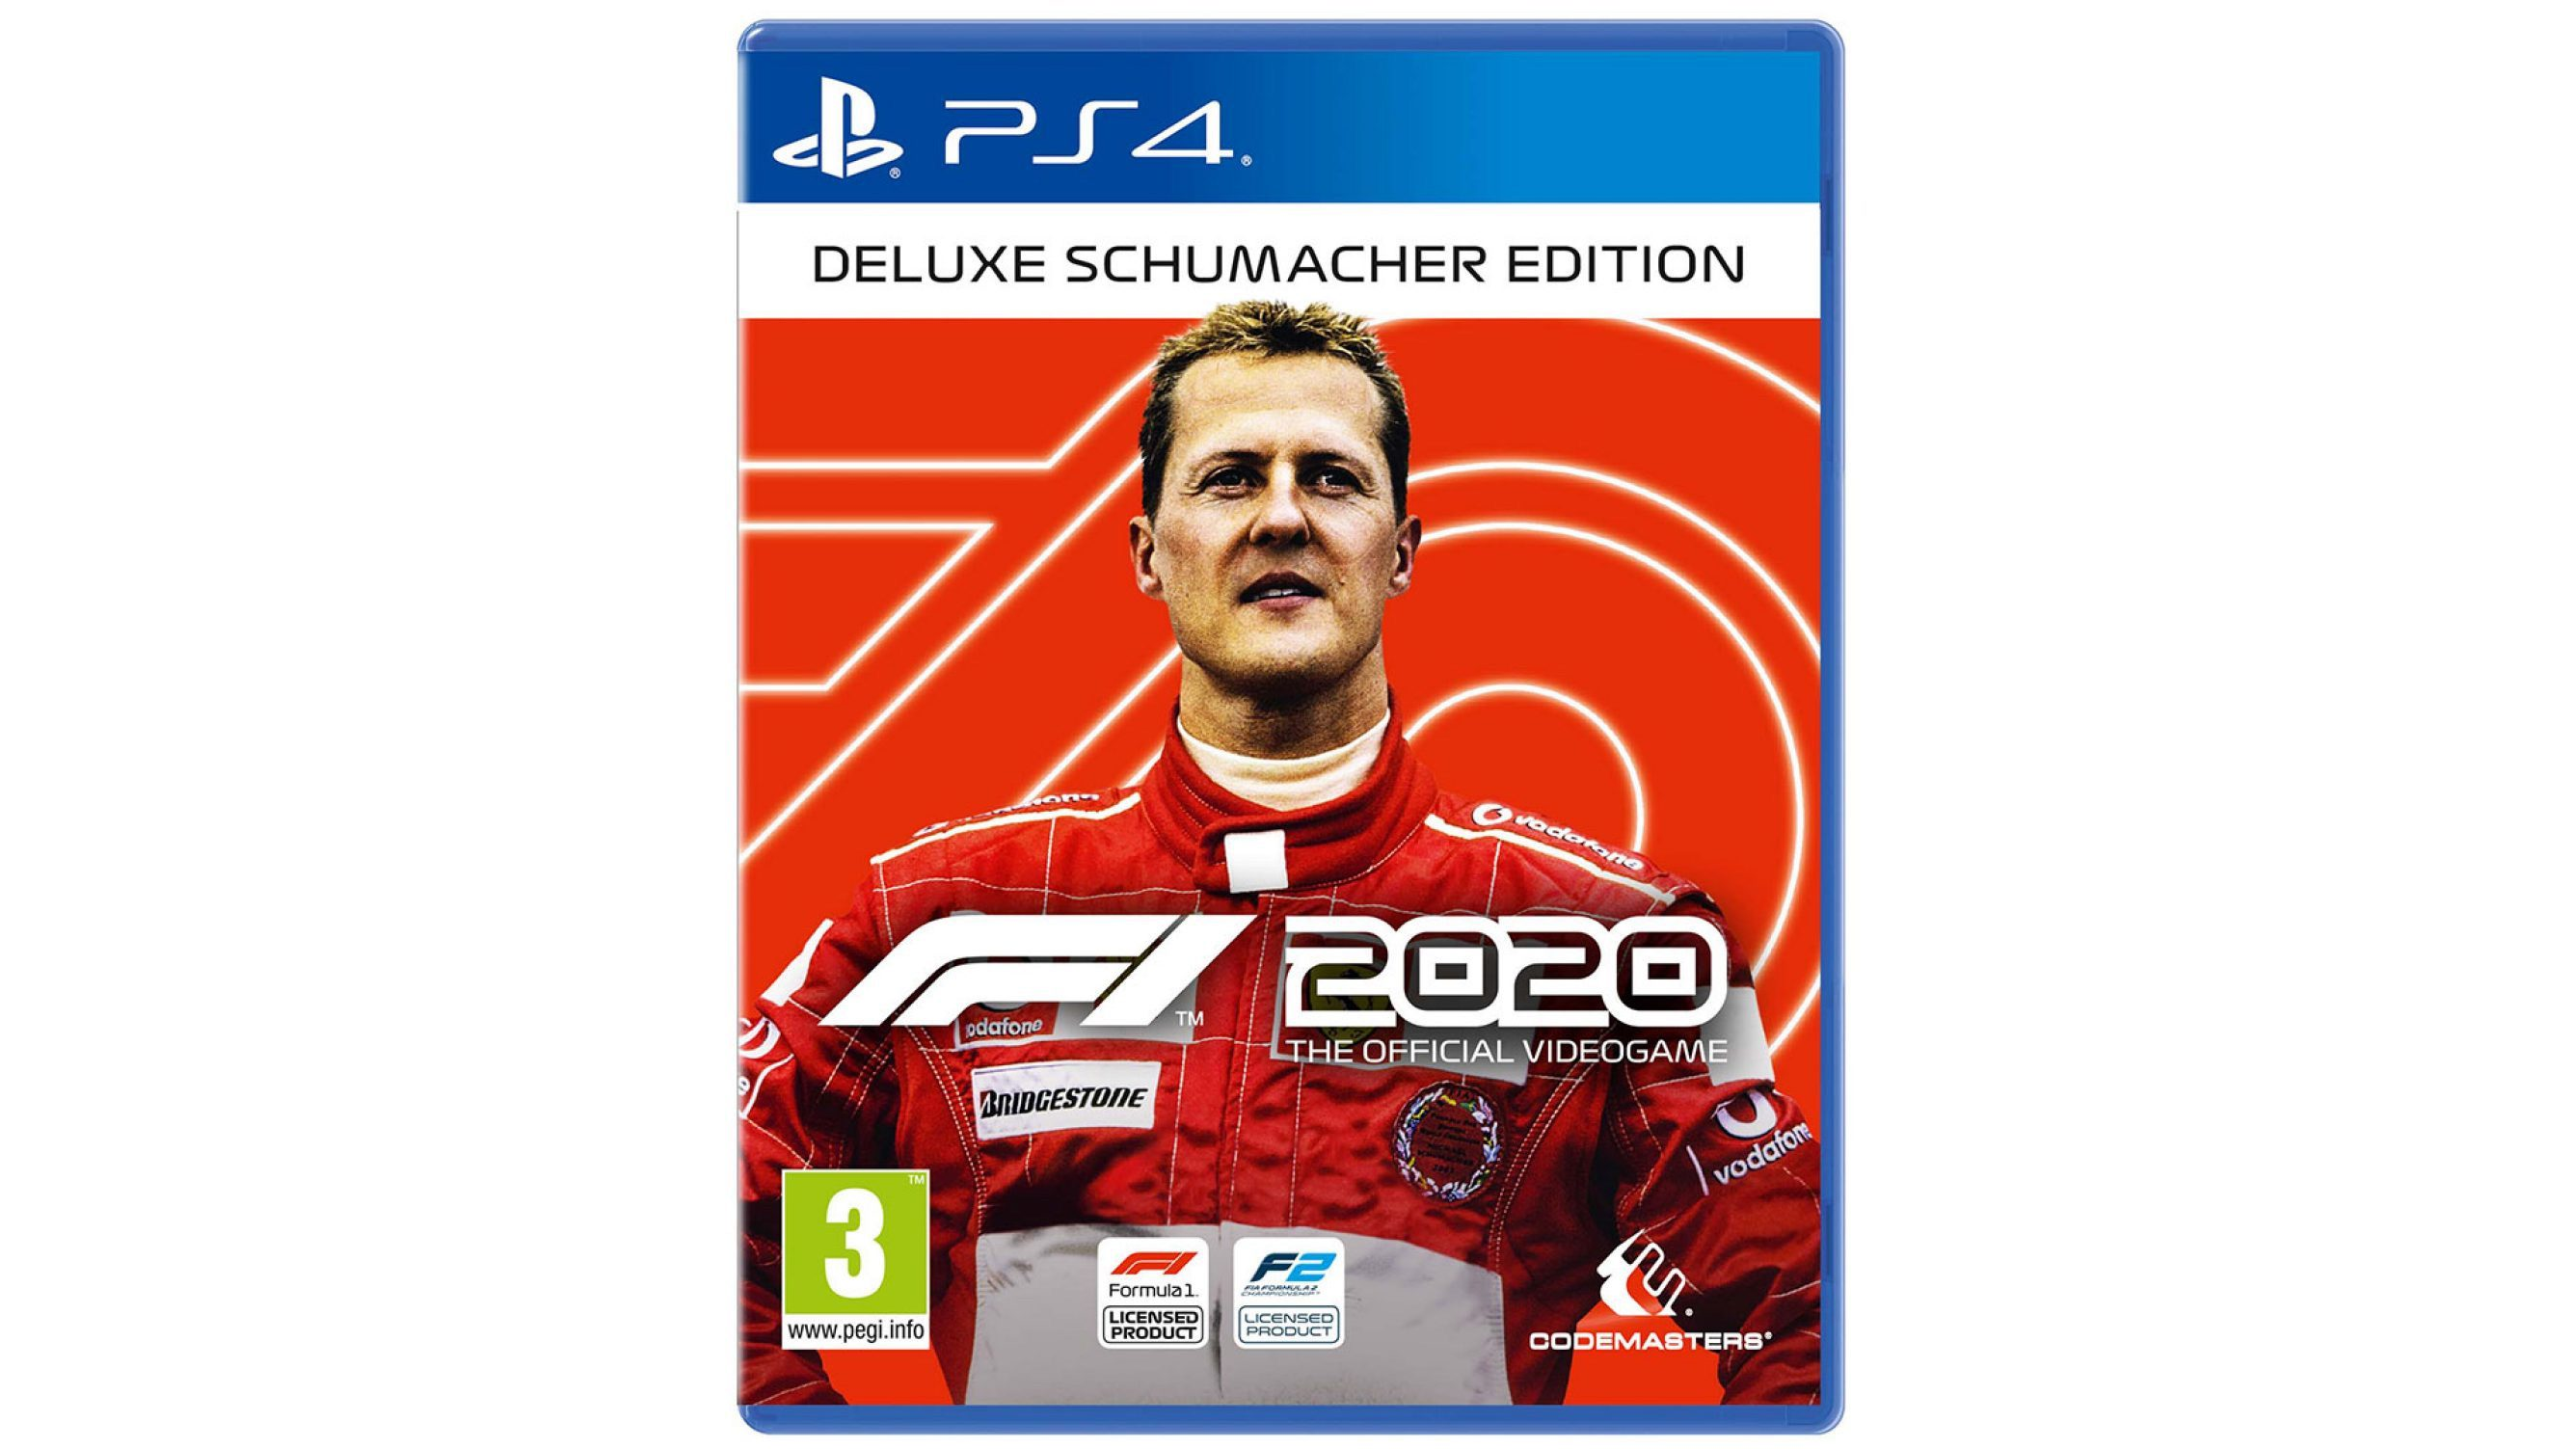 F1_2020_game_0006